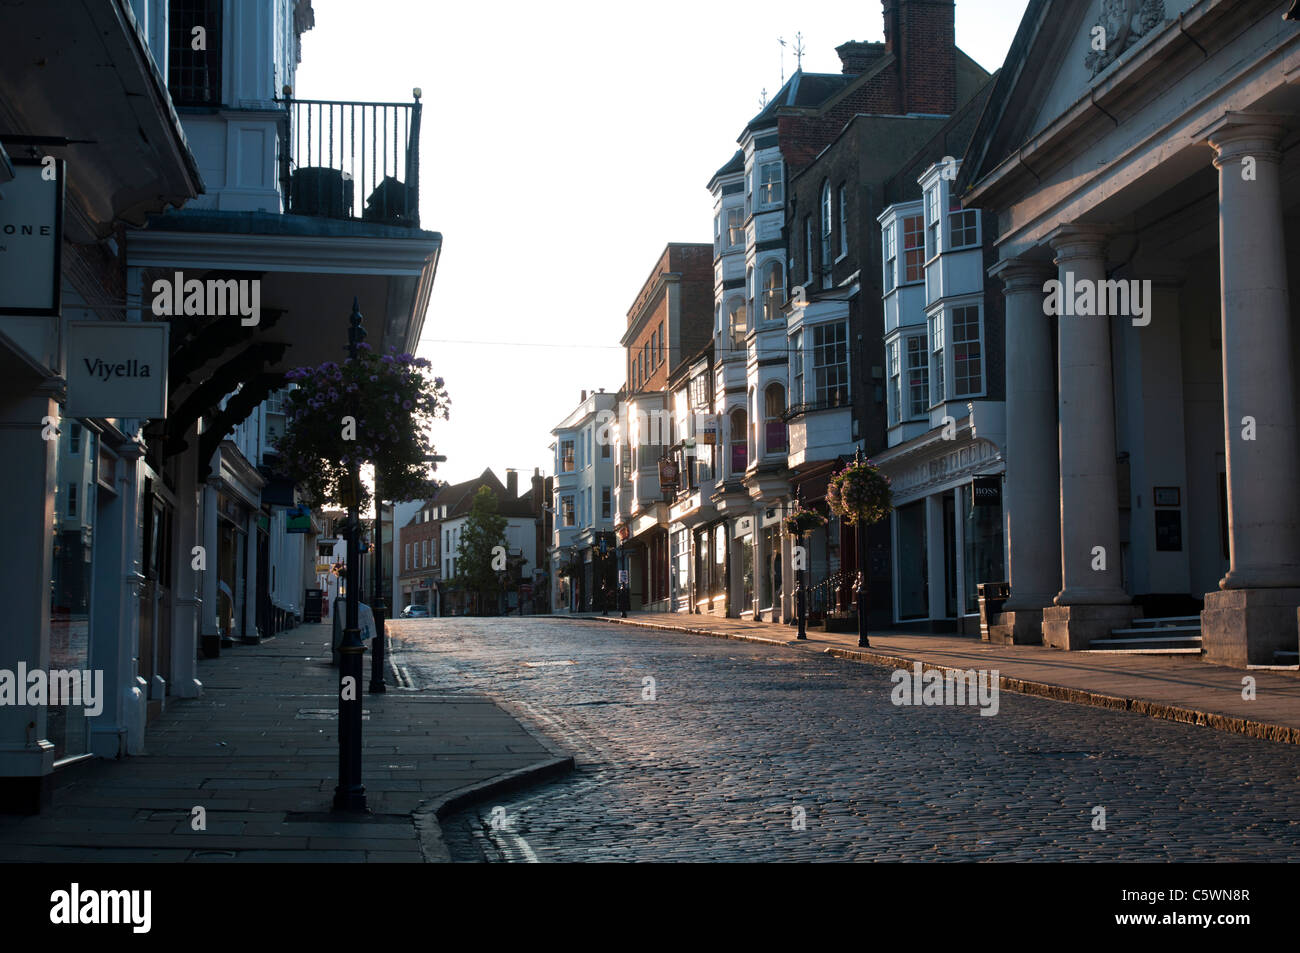 GUILDFORD, ENGLAND, 27th July 2011 - A view of Guildford High Street in the early morning summer sun. EDITORIAL - Stock Image